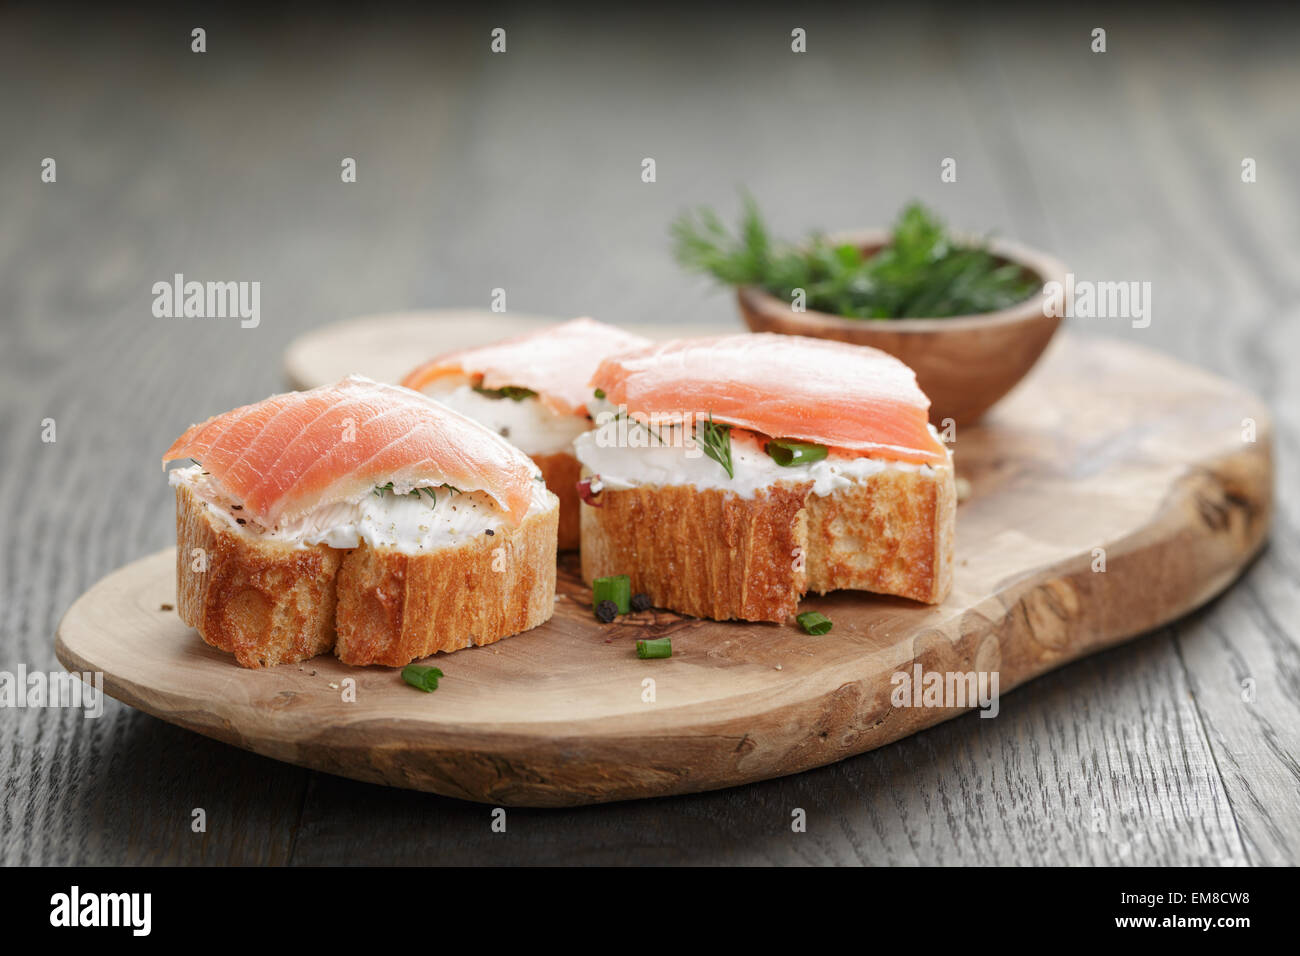 baguette slices with smoked salmon and cheese cream on wooden table - Stock Image